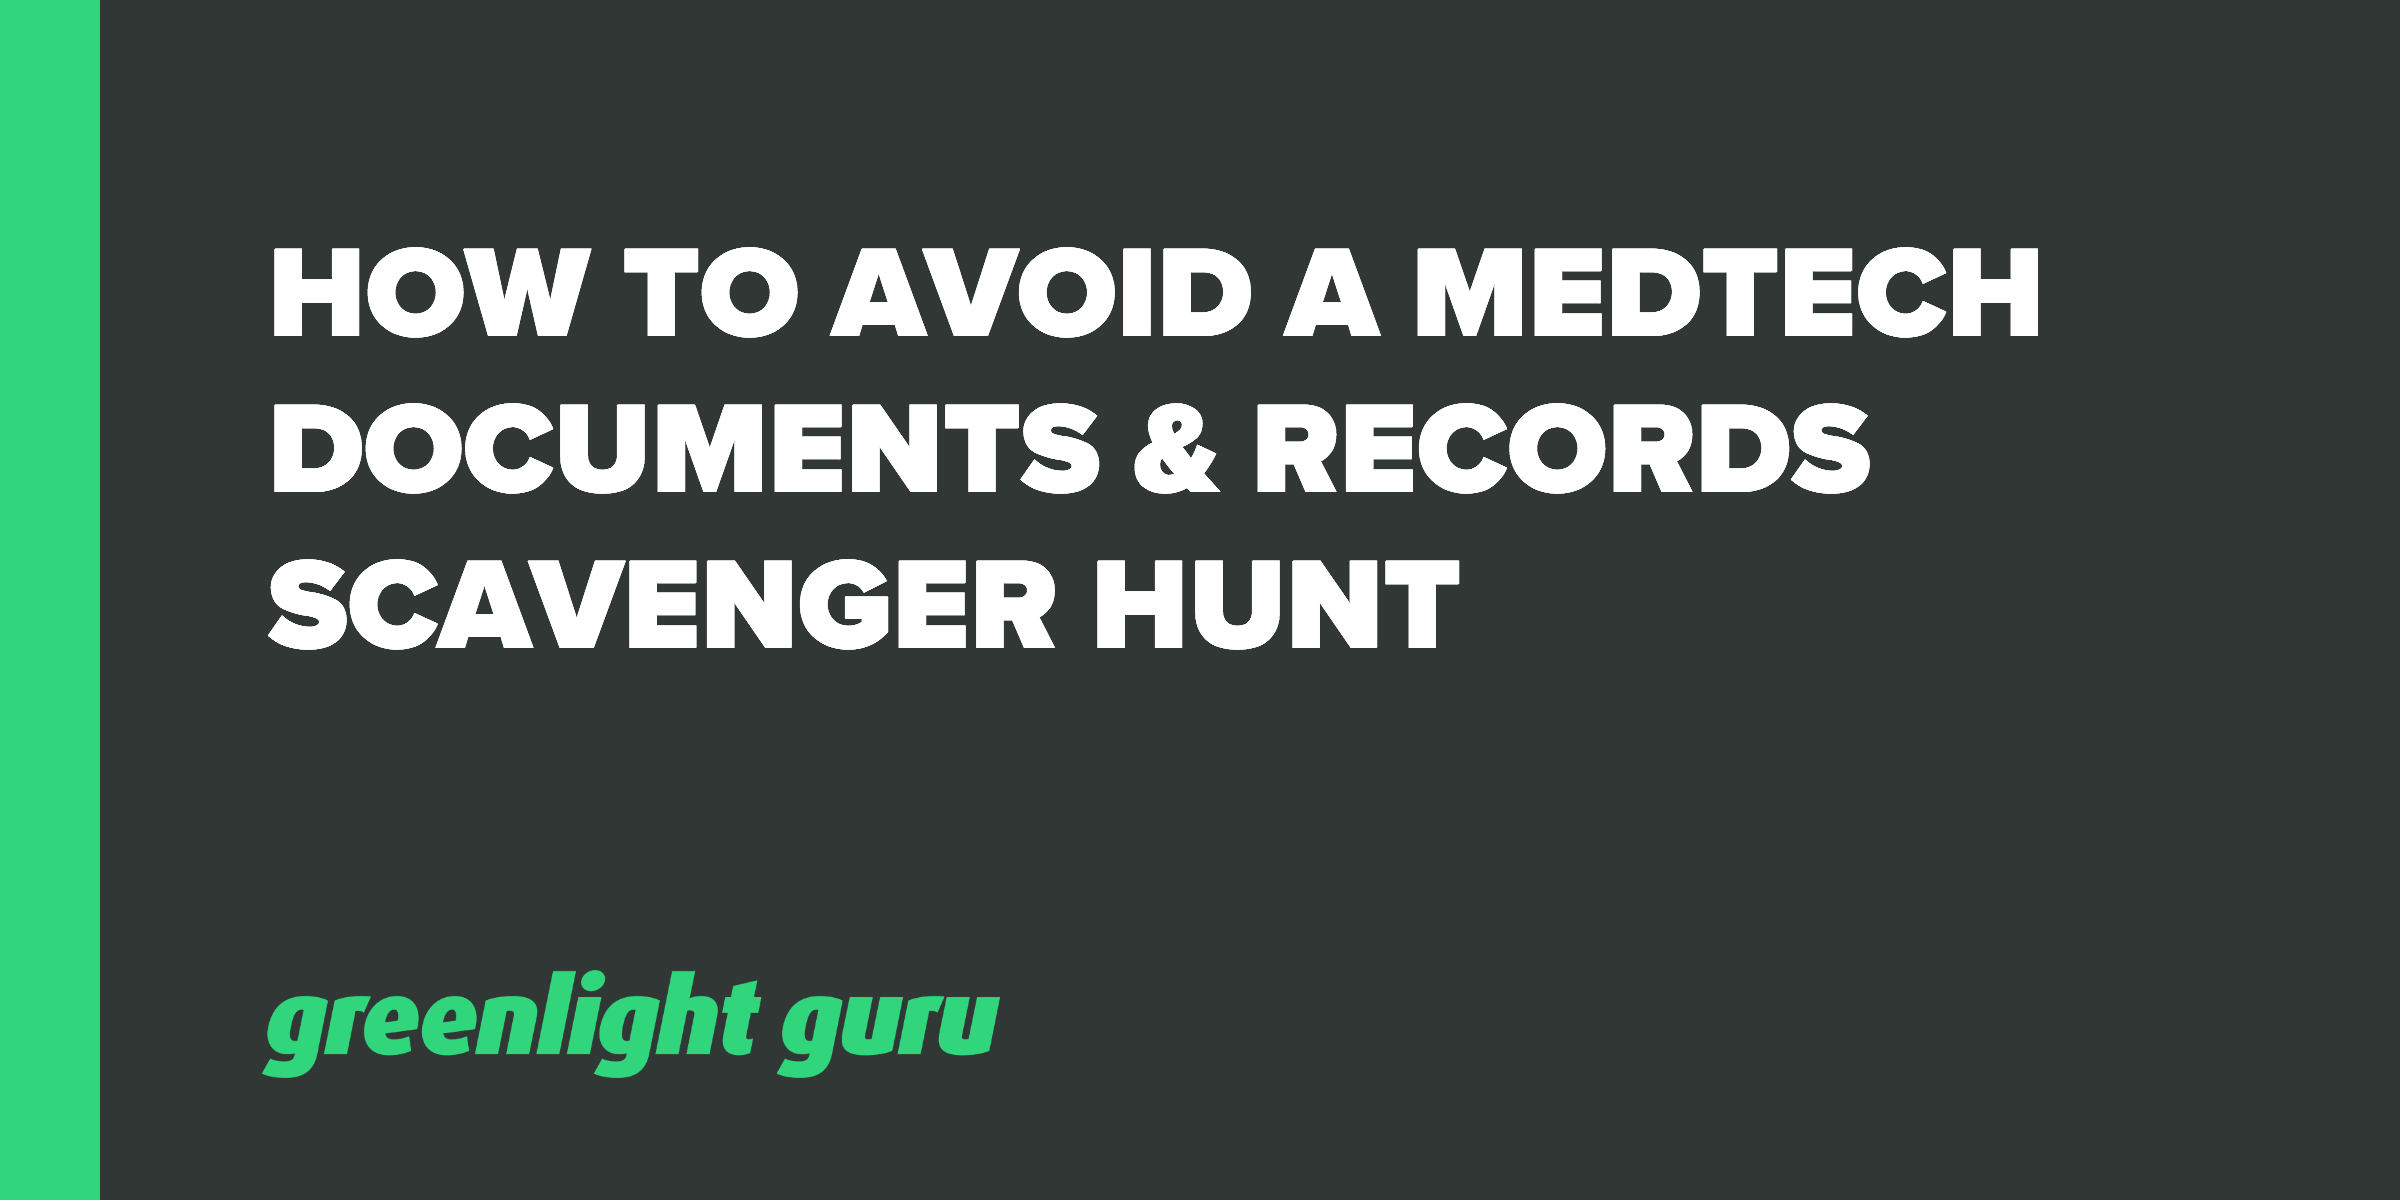 How To Avoid a Medtech Documents & Records Scavenger Hunt - Featured Image